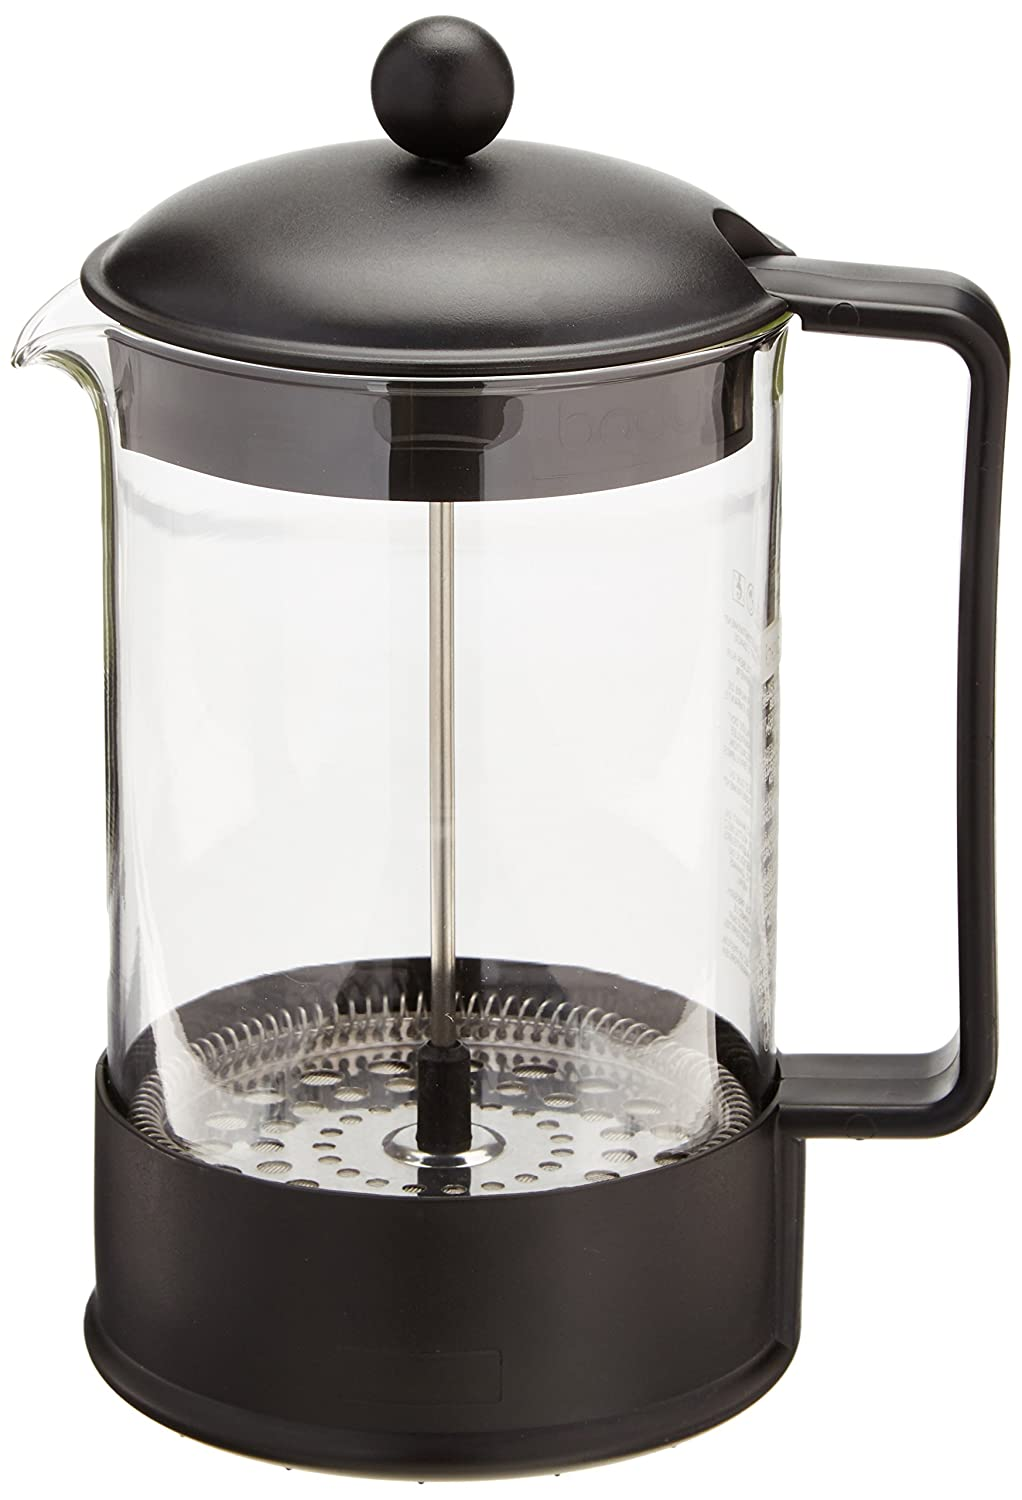 Bodum BRAZIL Coffee Maker, French Press Coffee Maker, Black, 51 Ounce (12 Cup)